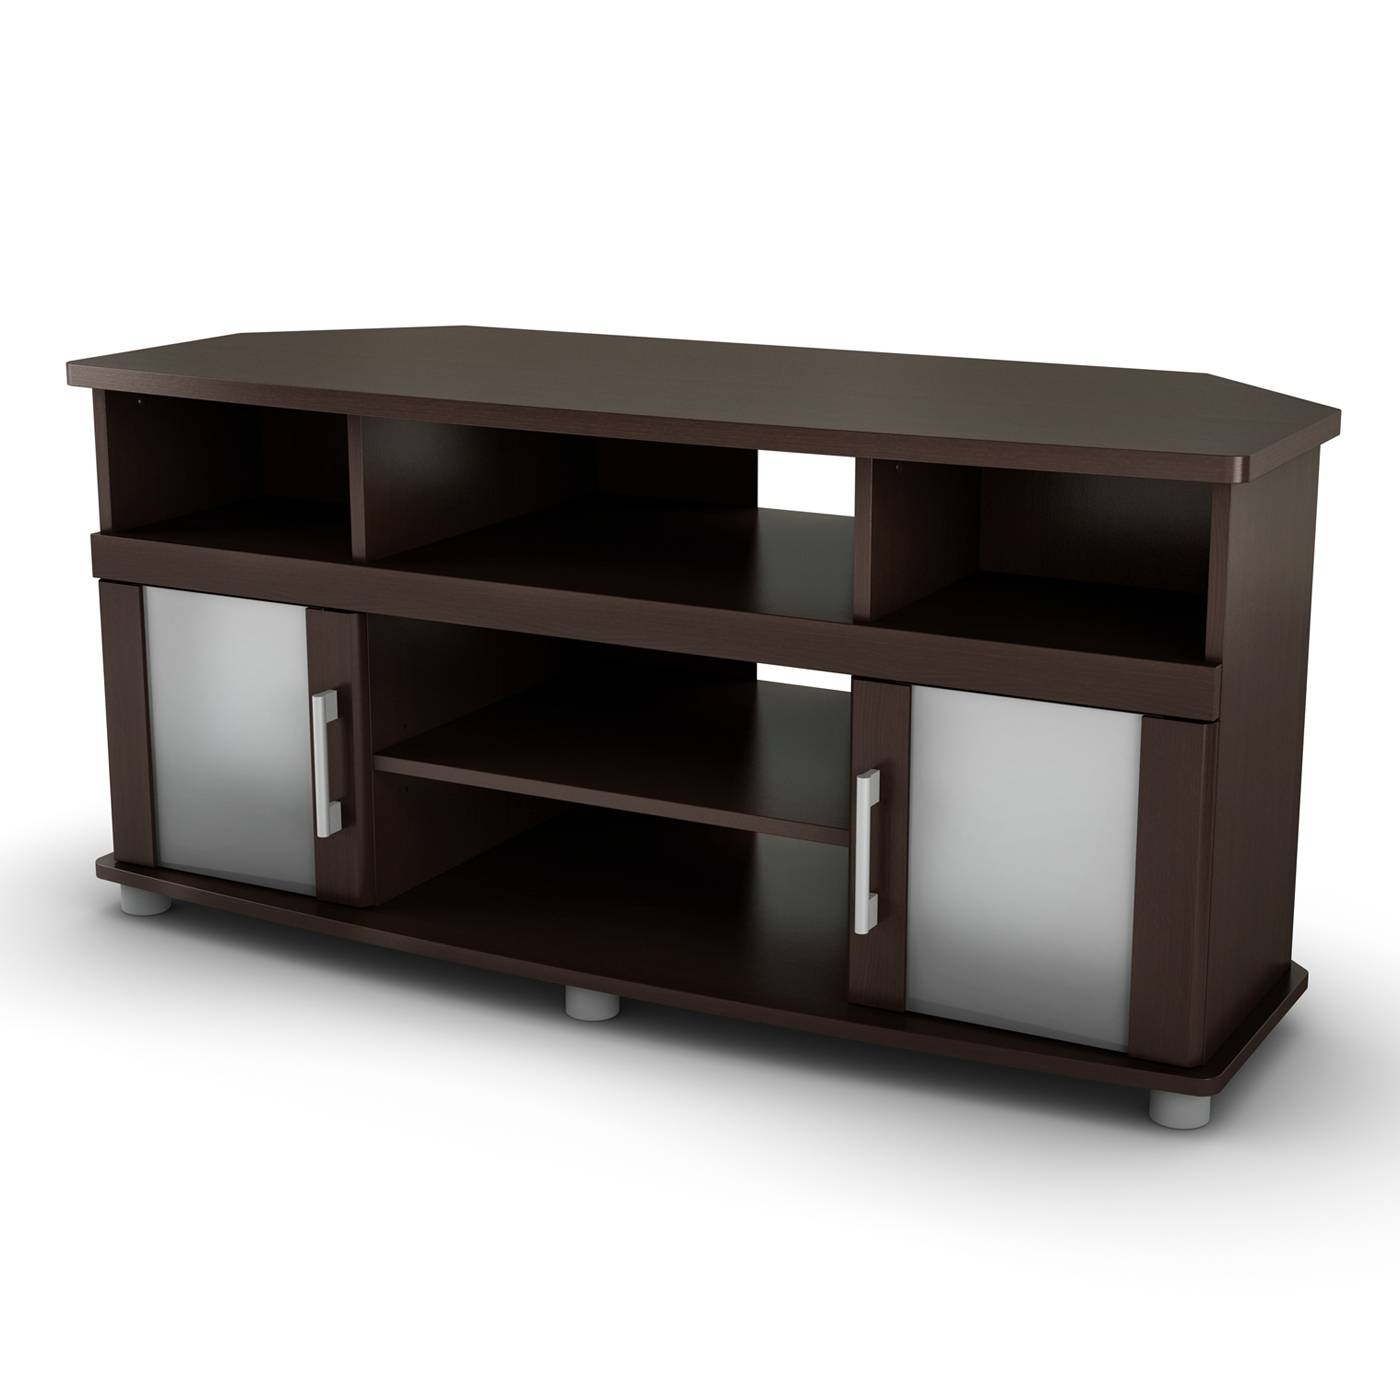 South Shore Furniture City Life Corner Tv Stand | Lowe's Canada for Corner Tv Stands (Image 13 of 15)